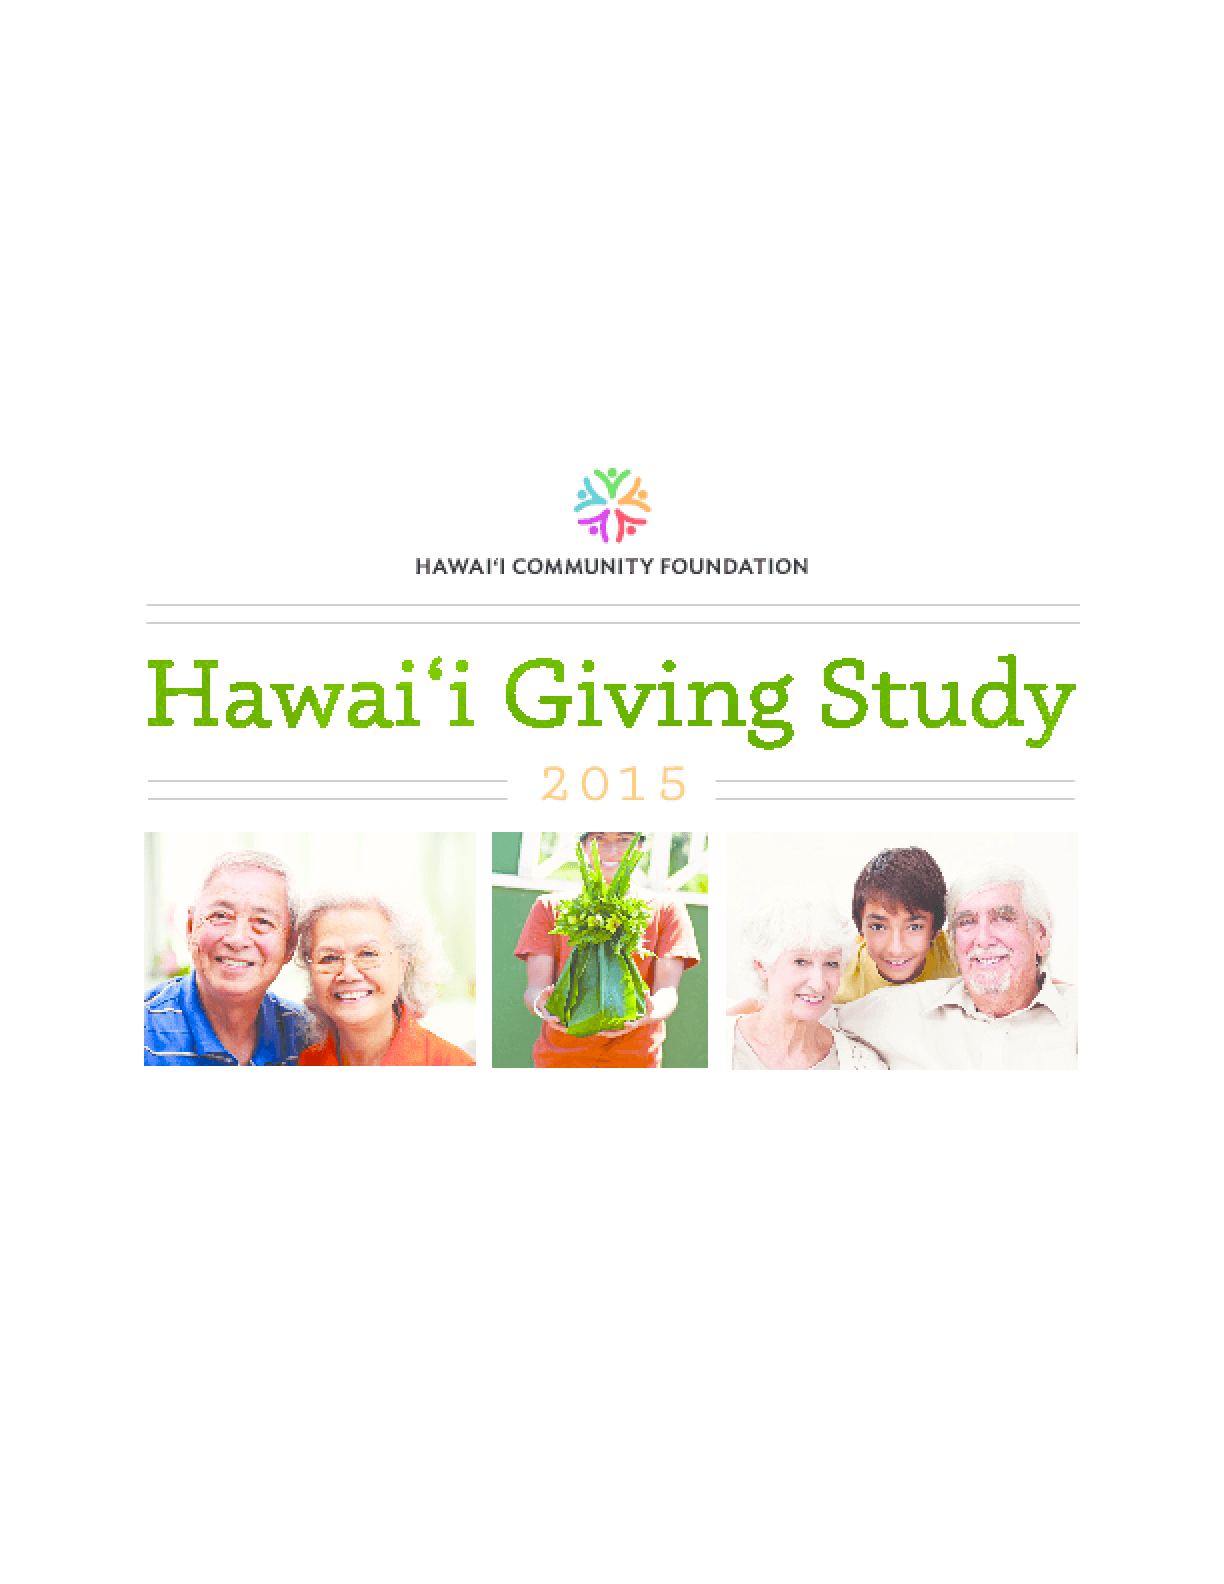 The Hawai'i Giving Study 2015